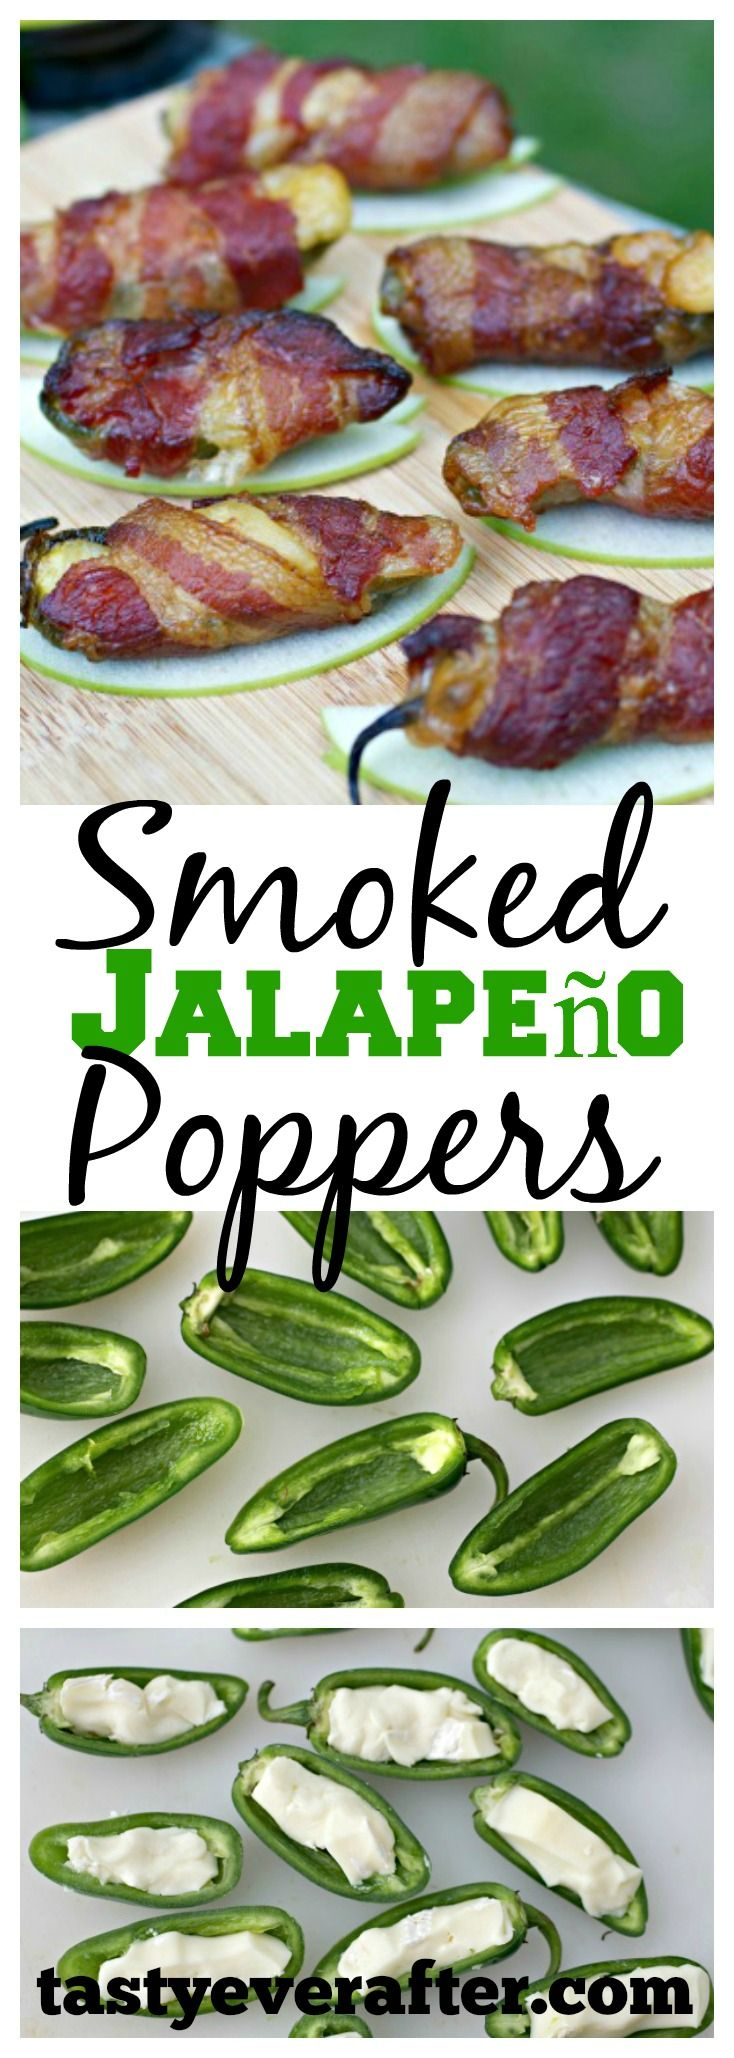 This recipe is so easy! Fresh jalapenos stuffed with brie, wrapped in bacon, and served on a thin crisp fresh green apple slice.